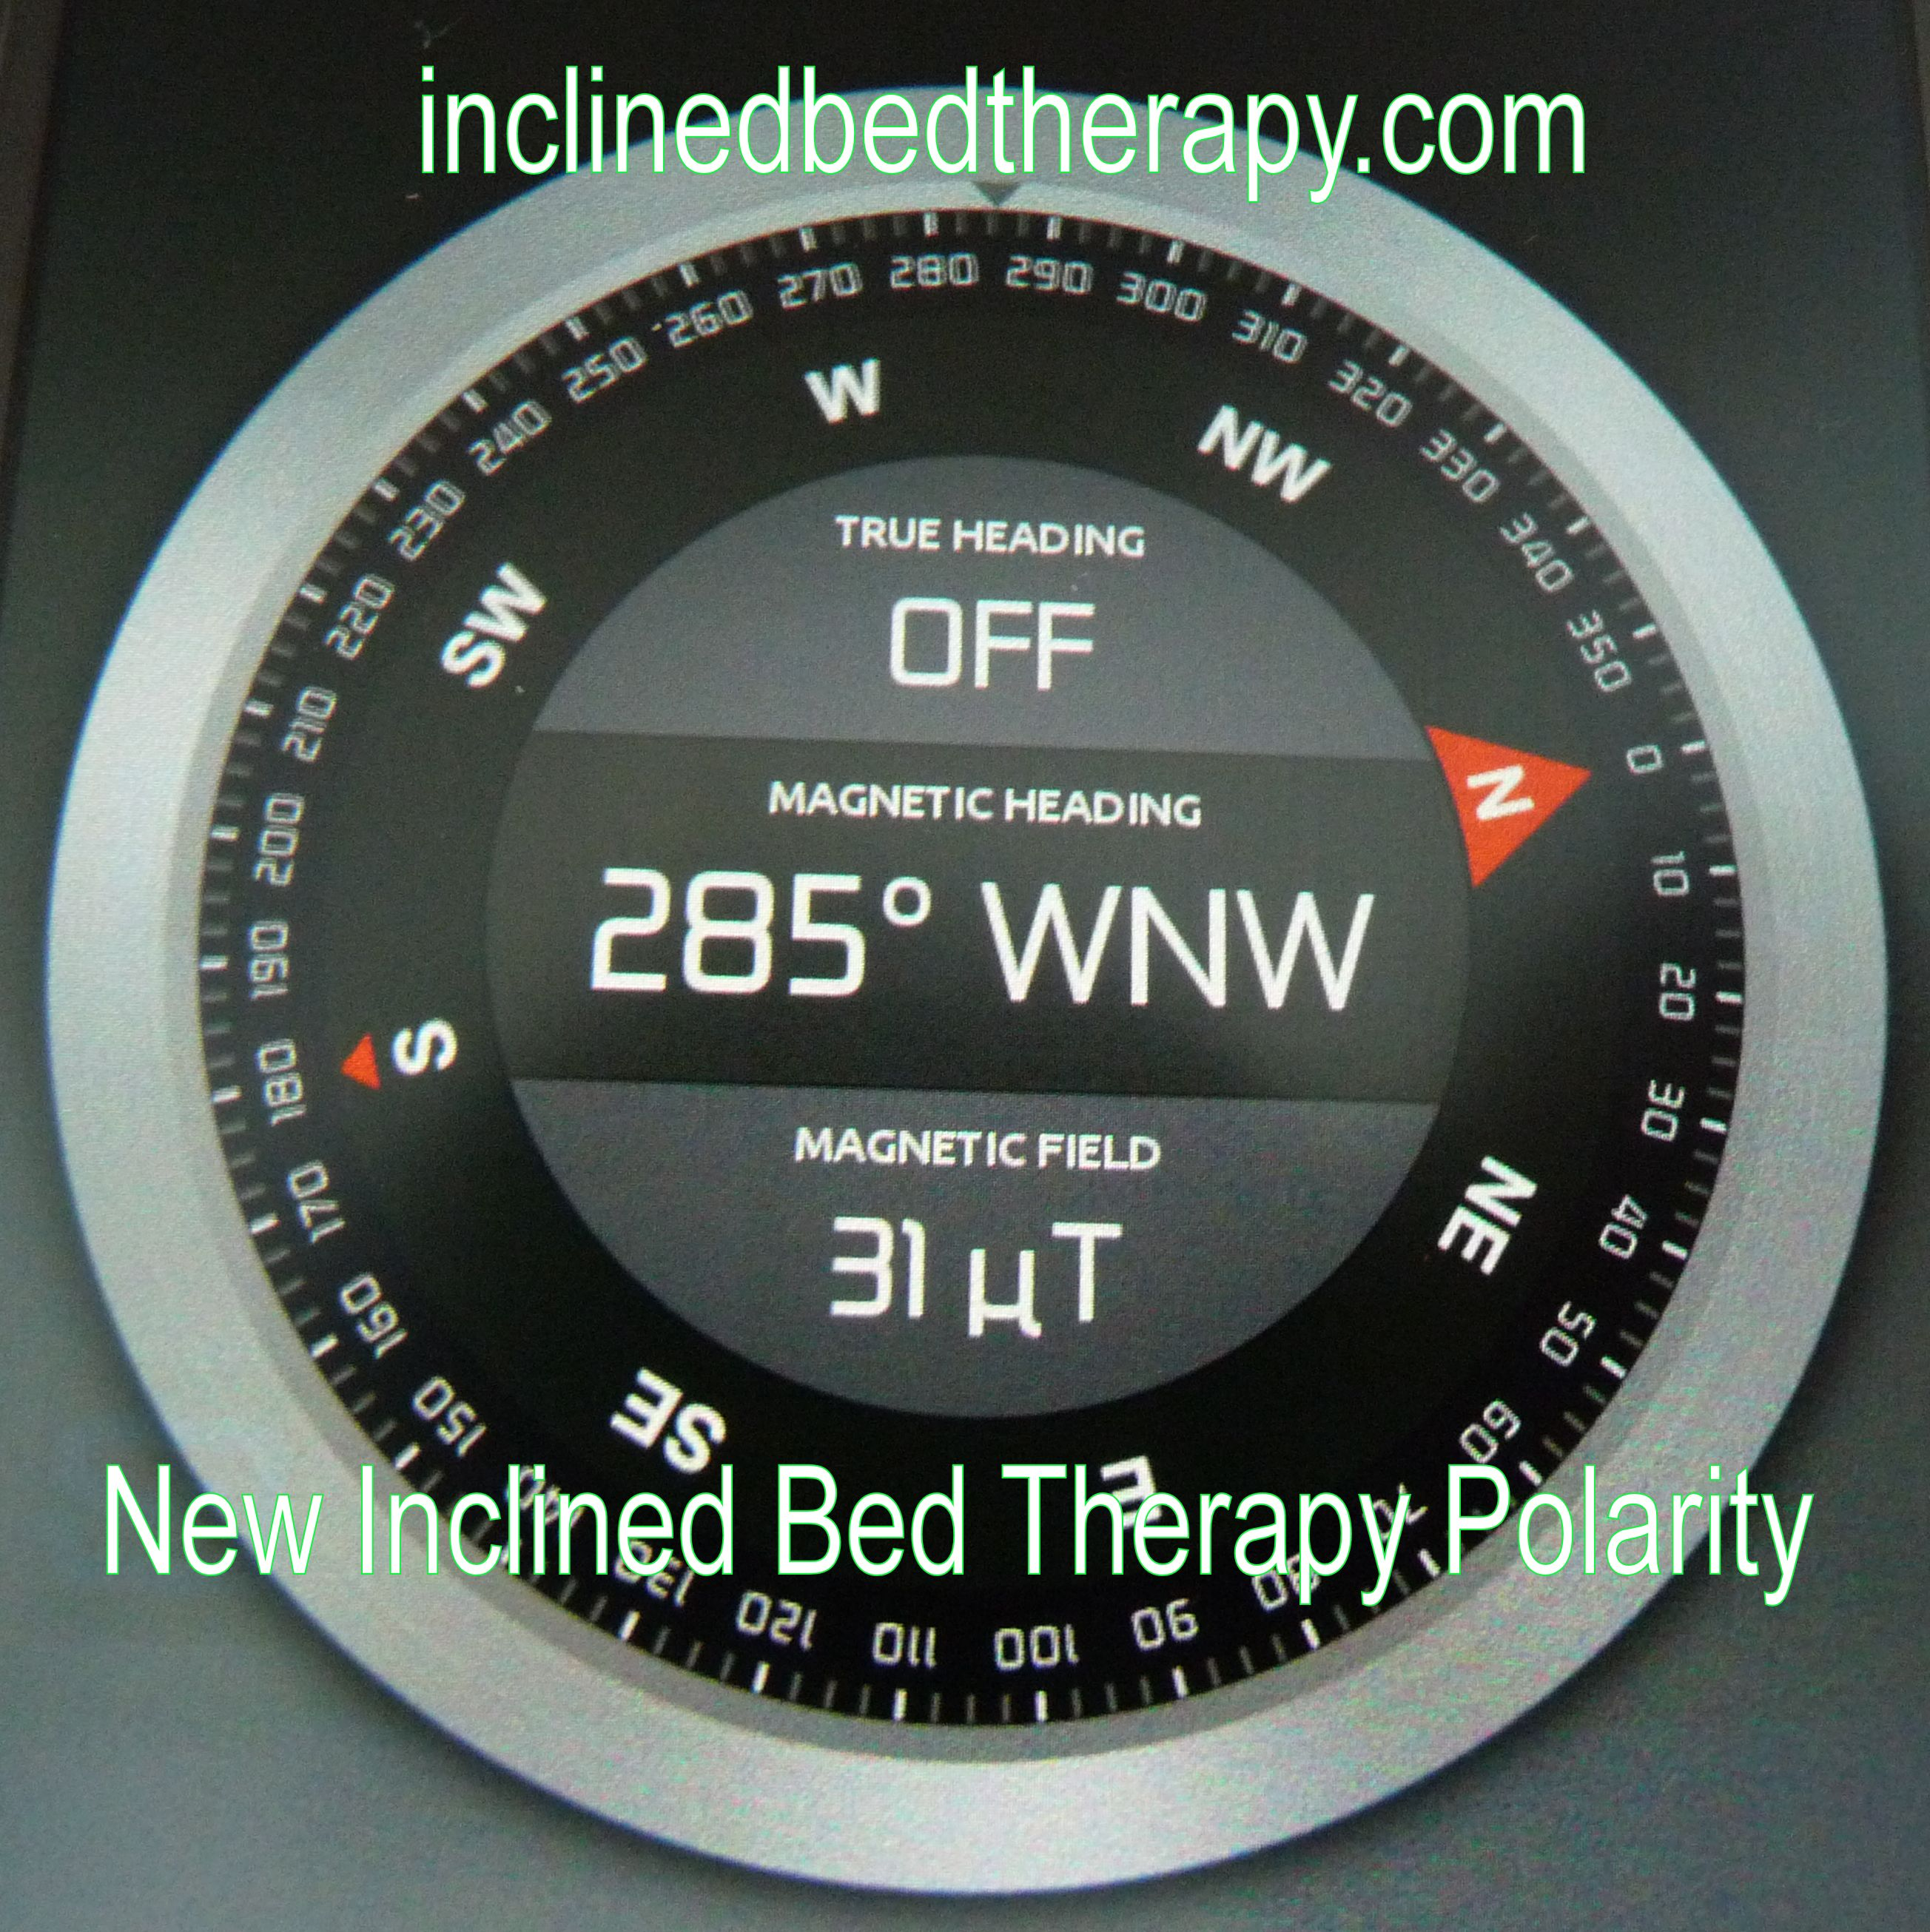 Bed Polarity and Inclined Bed Therapy using a mobile Compass App ...